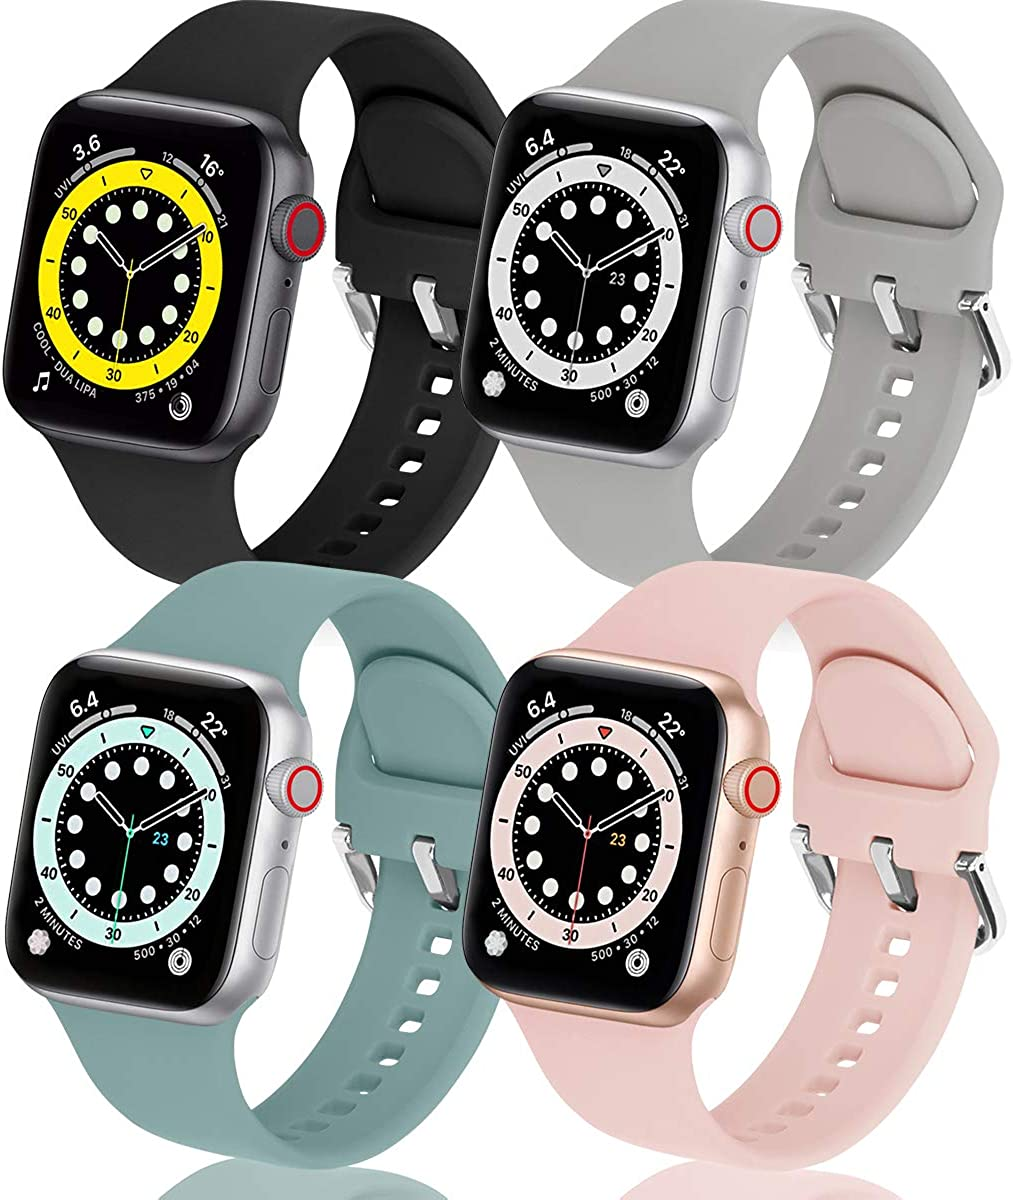 eCamframe Sport Bands Compatible with Apple Watch Bands 38mm 40mm 41mm 42mm 44mm 45mm, 4 packs Soft Silicone Waterproof Replacement Strap Wristband with Classic Clasp for iWatch Series 7 6 5 4 3 2 1 SE Women Men